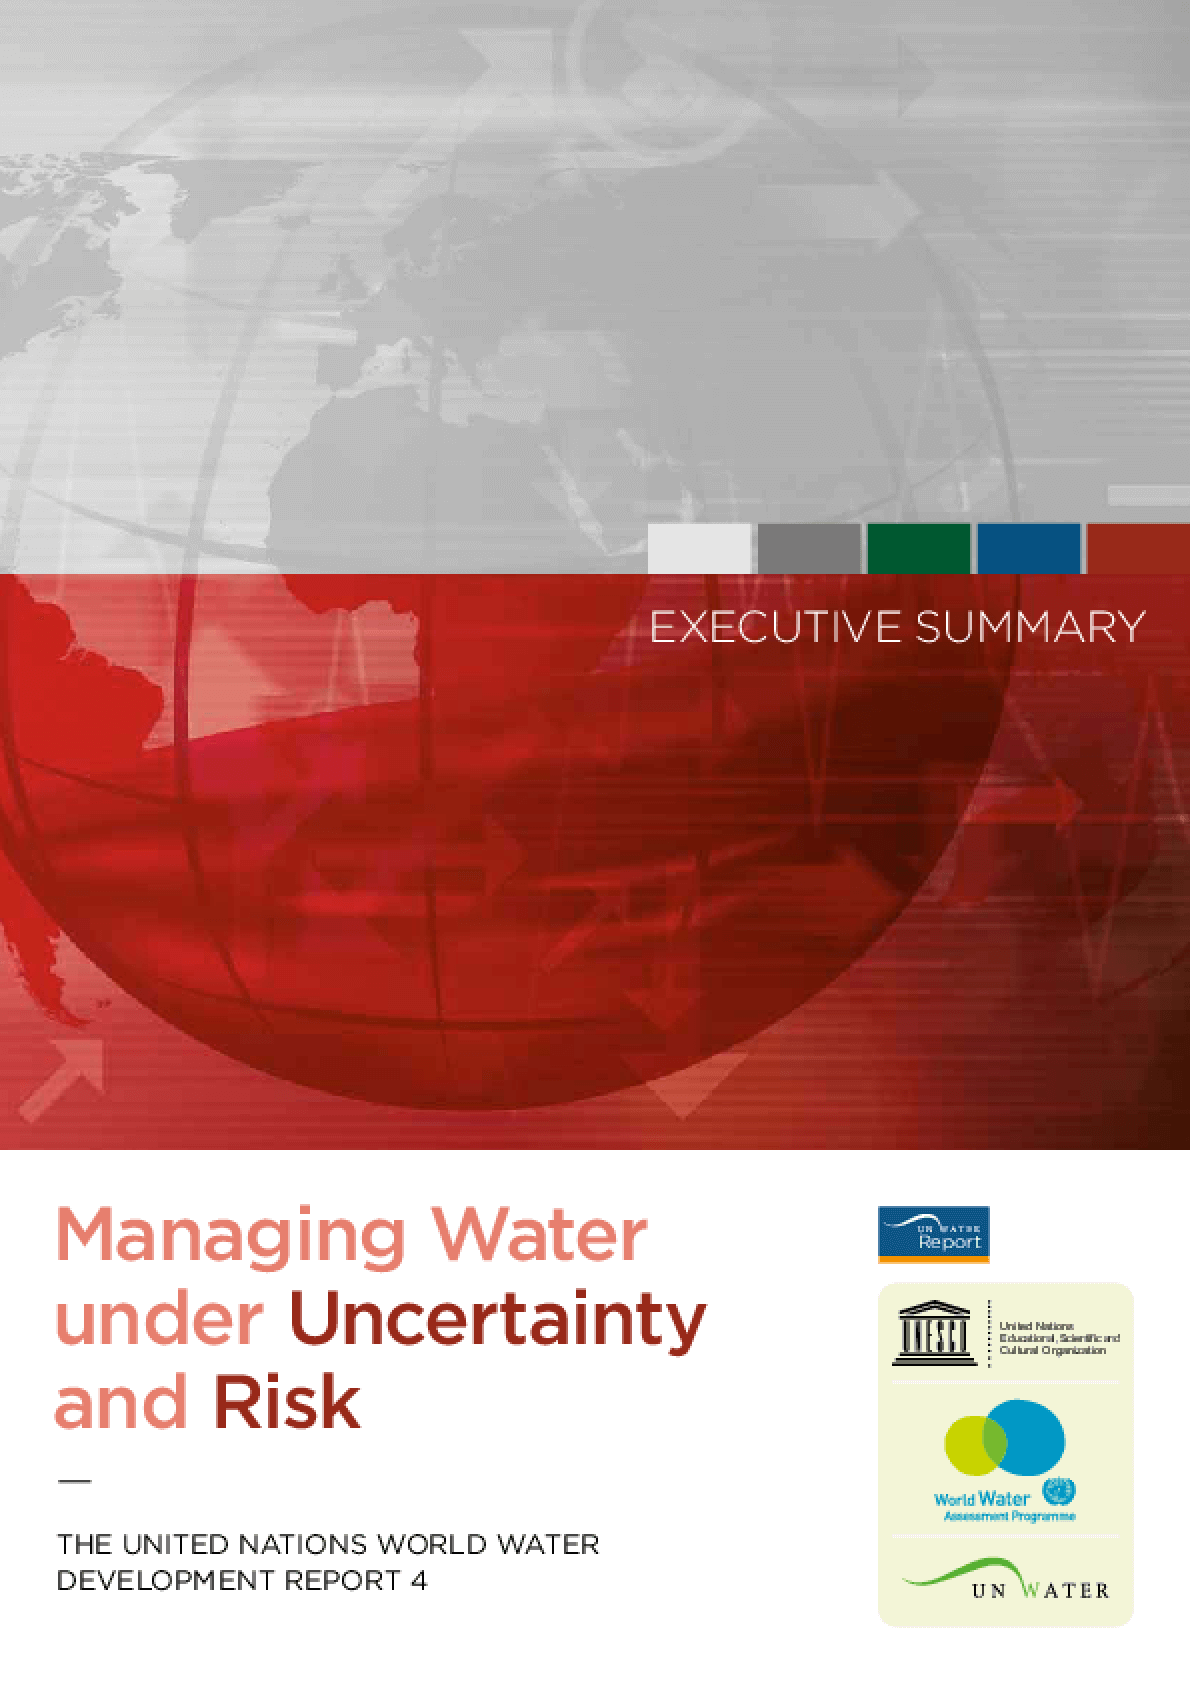 Managing Water under Uncertainty and Risk: The United Nations World Water Development Report 4